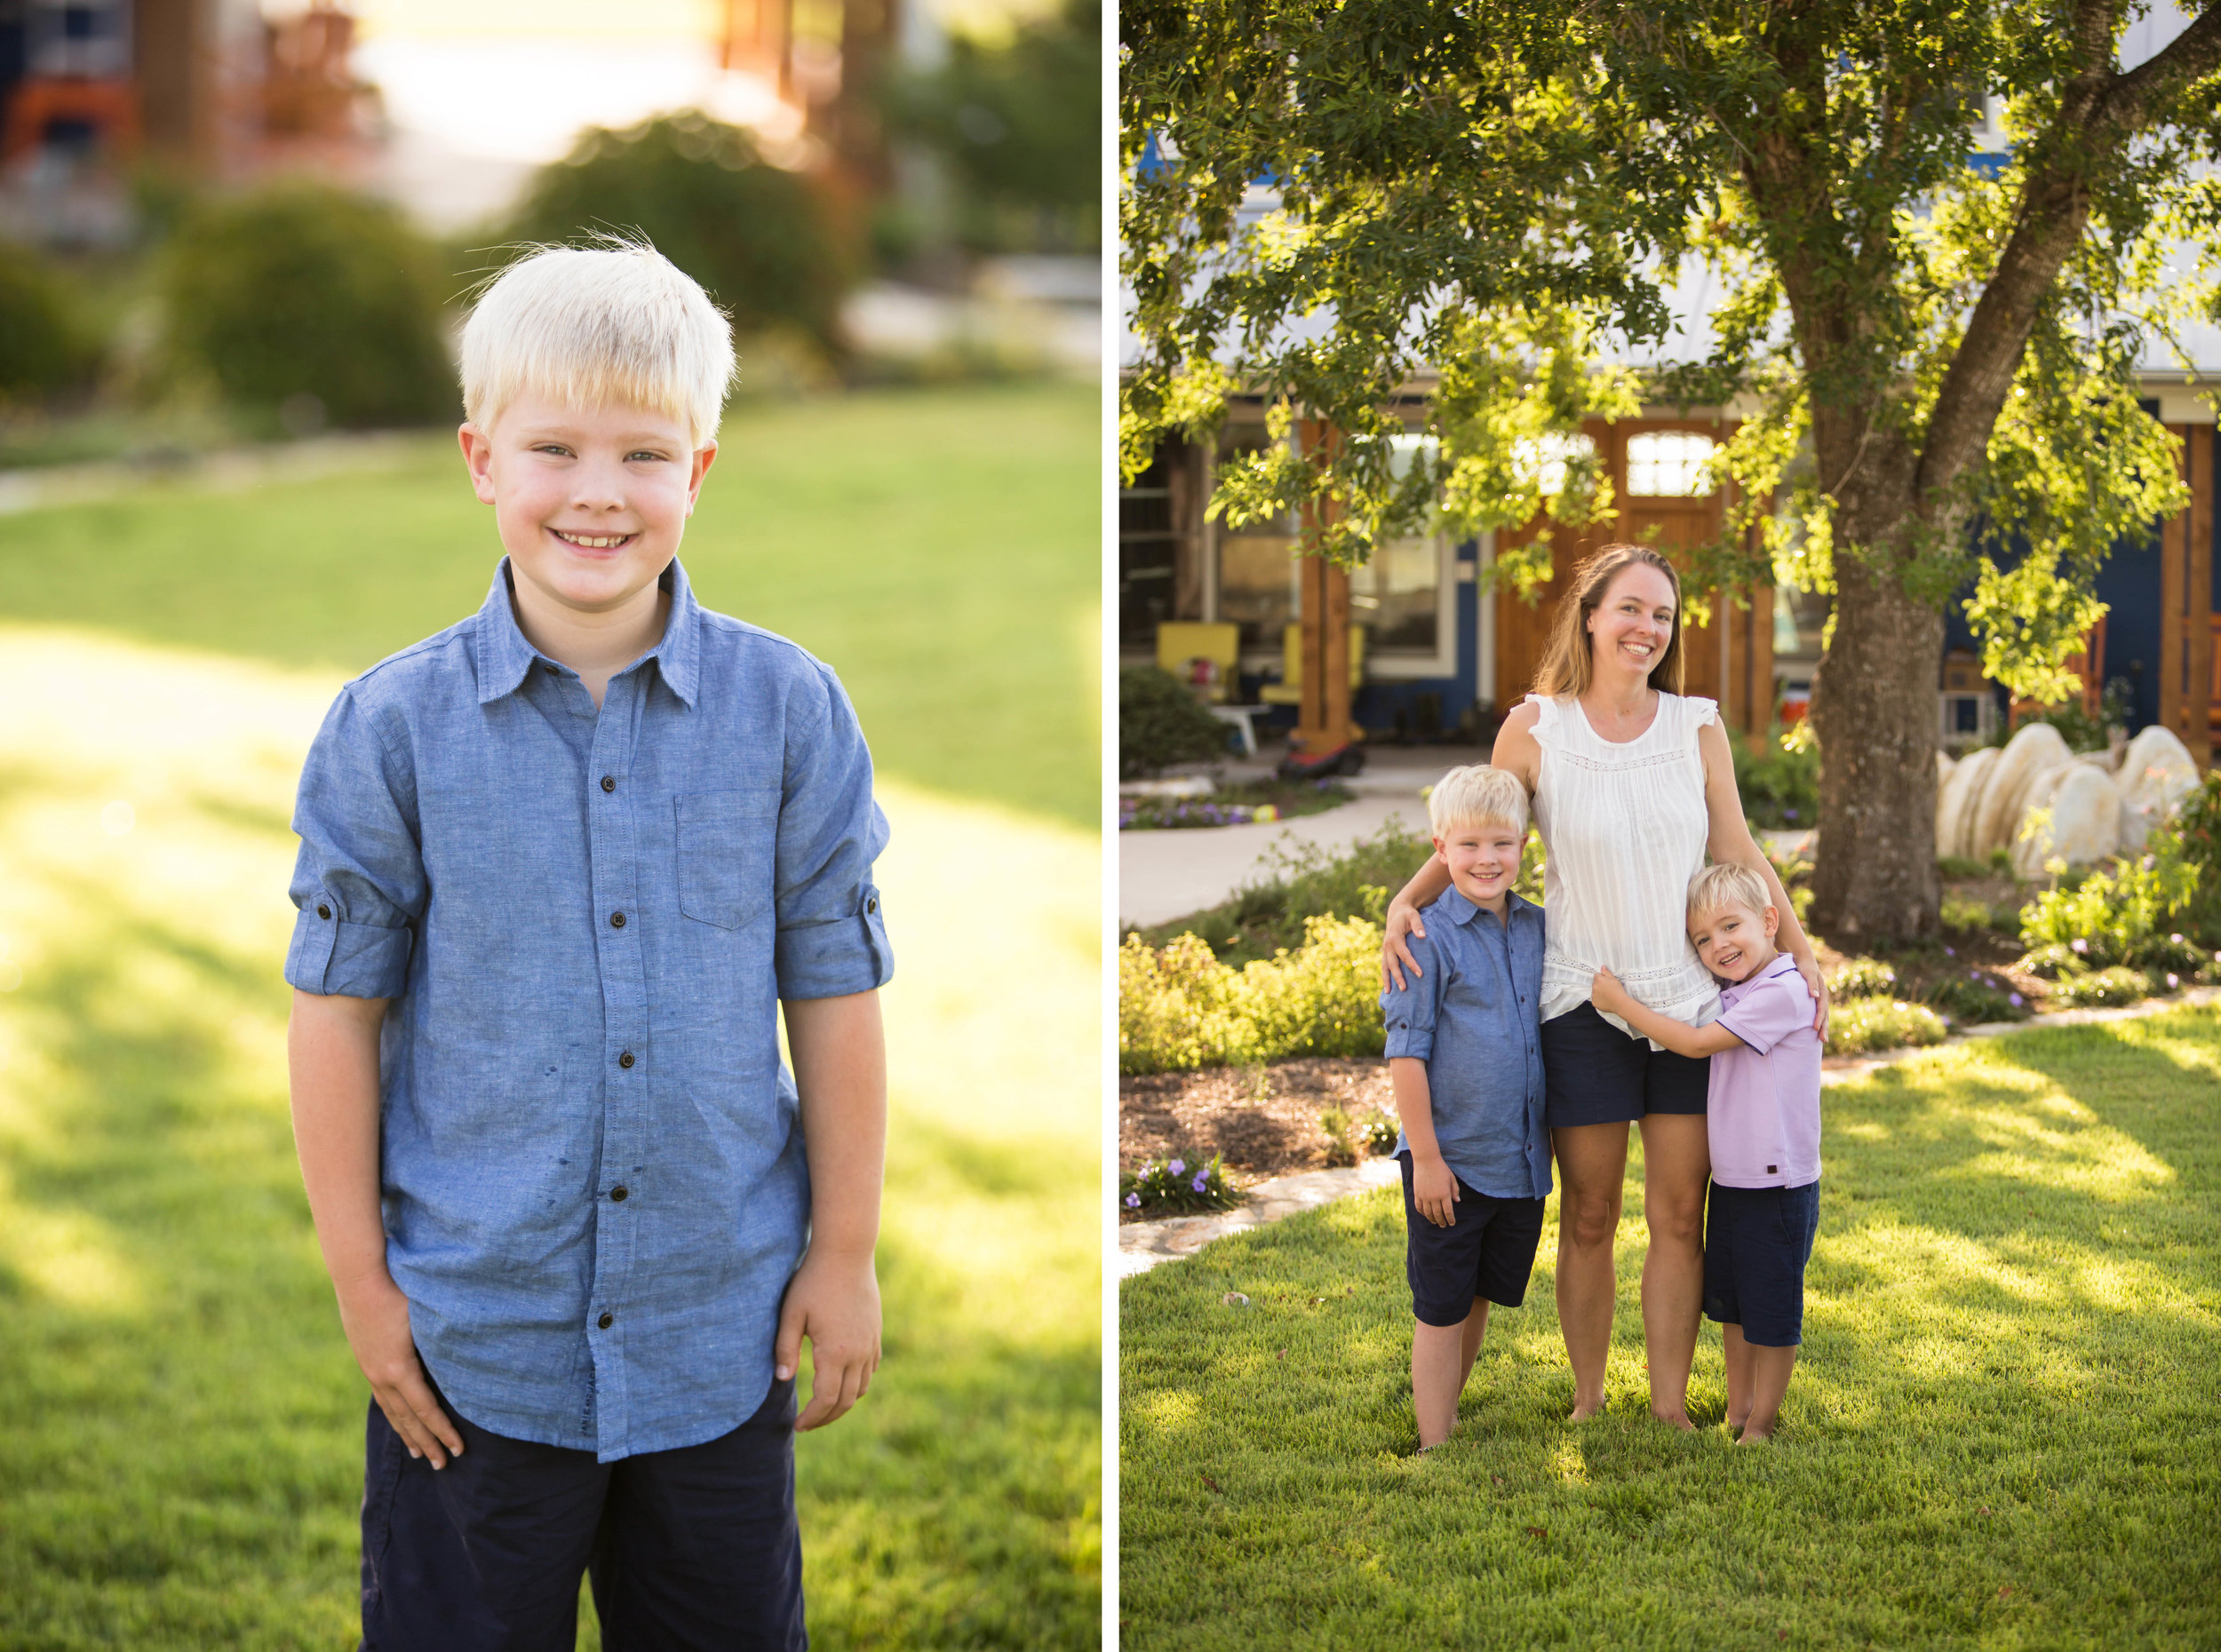 Marble_Falls_Family_Photographer_Farm_Jenna_Petty_08.jpg